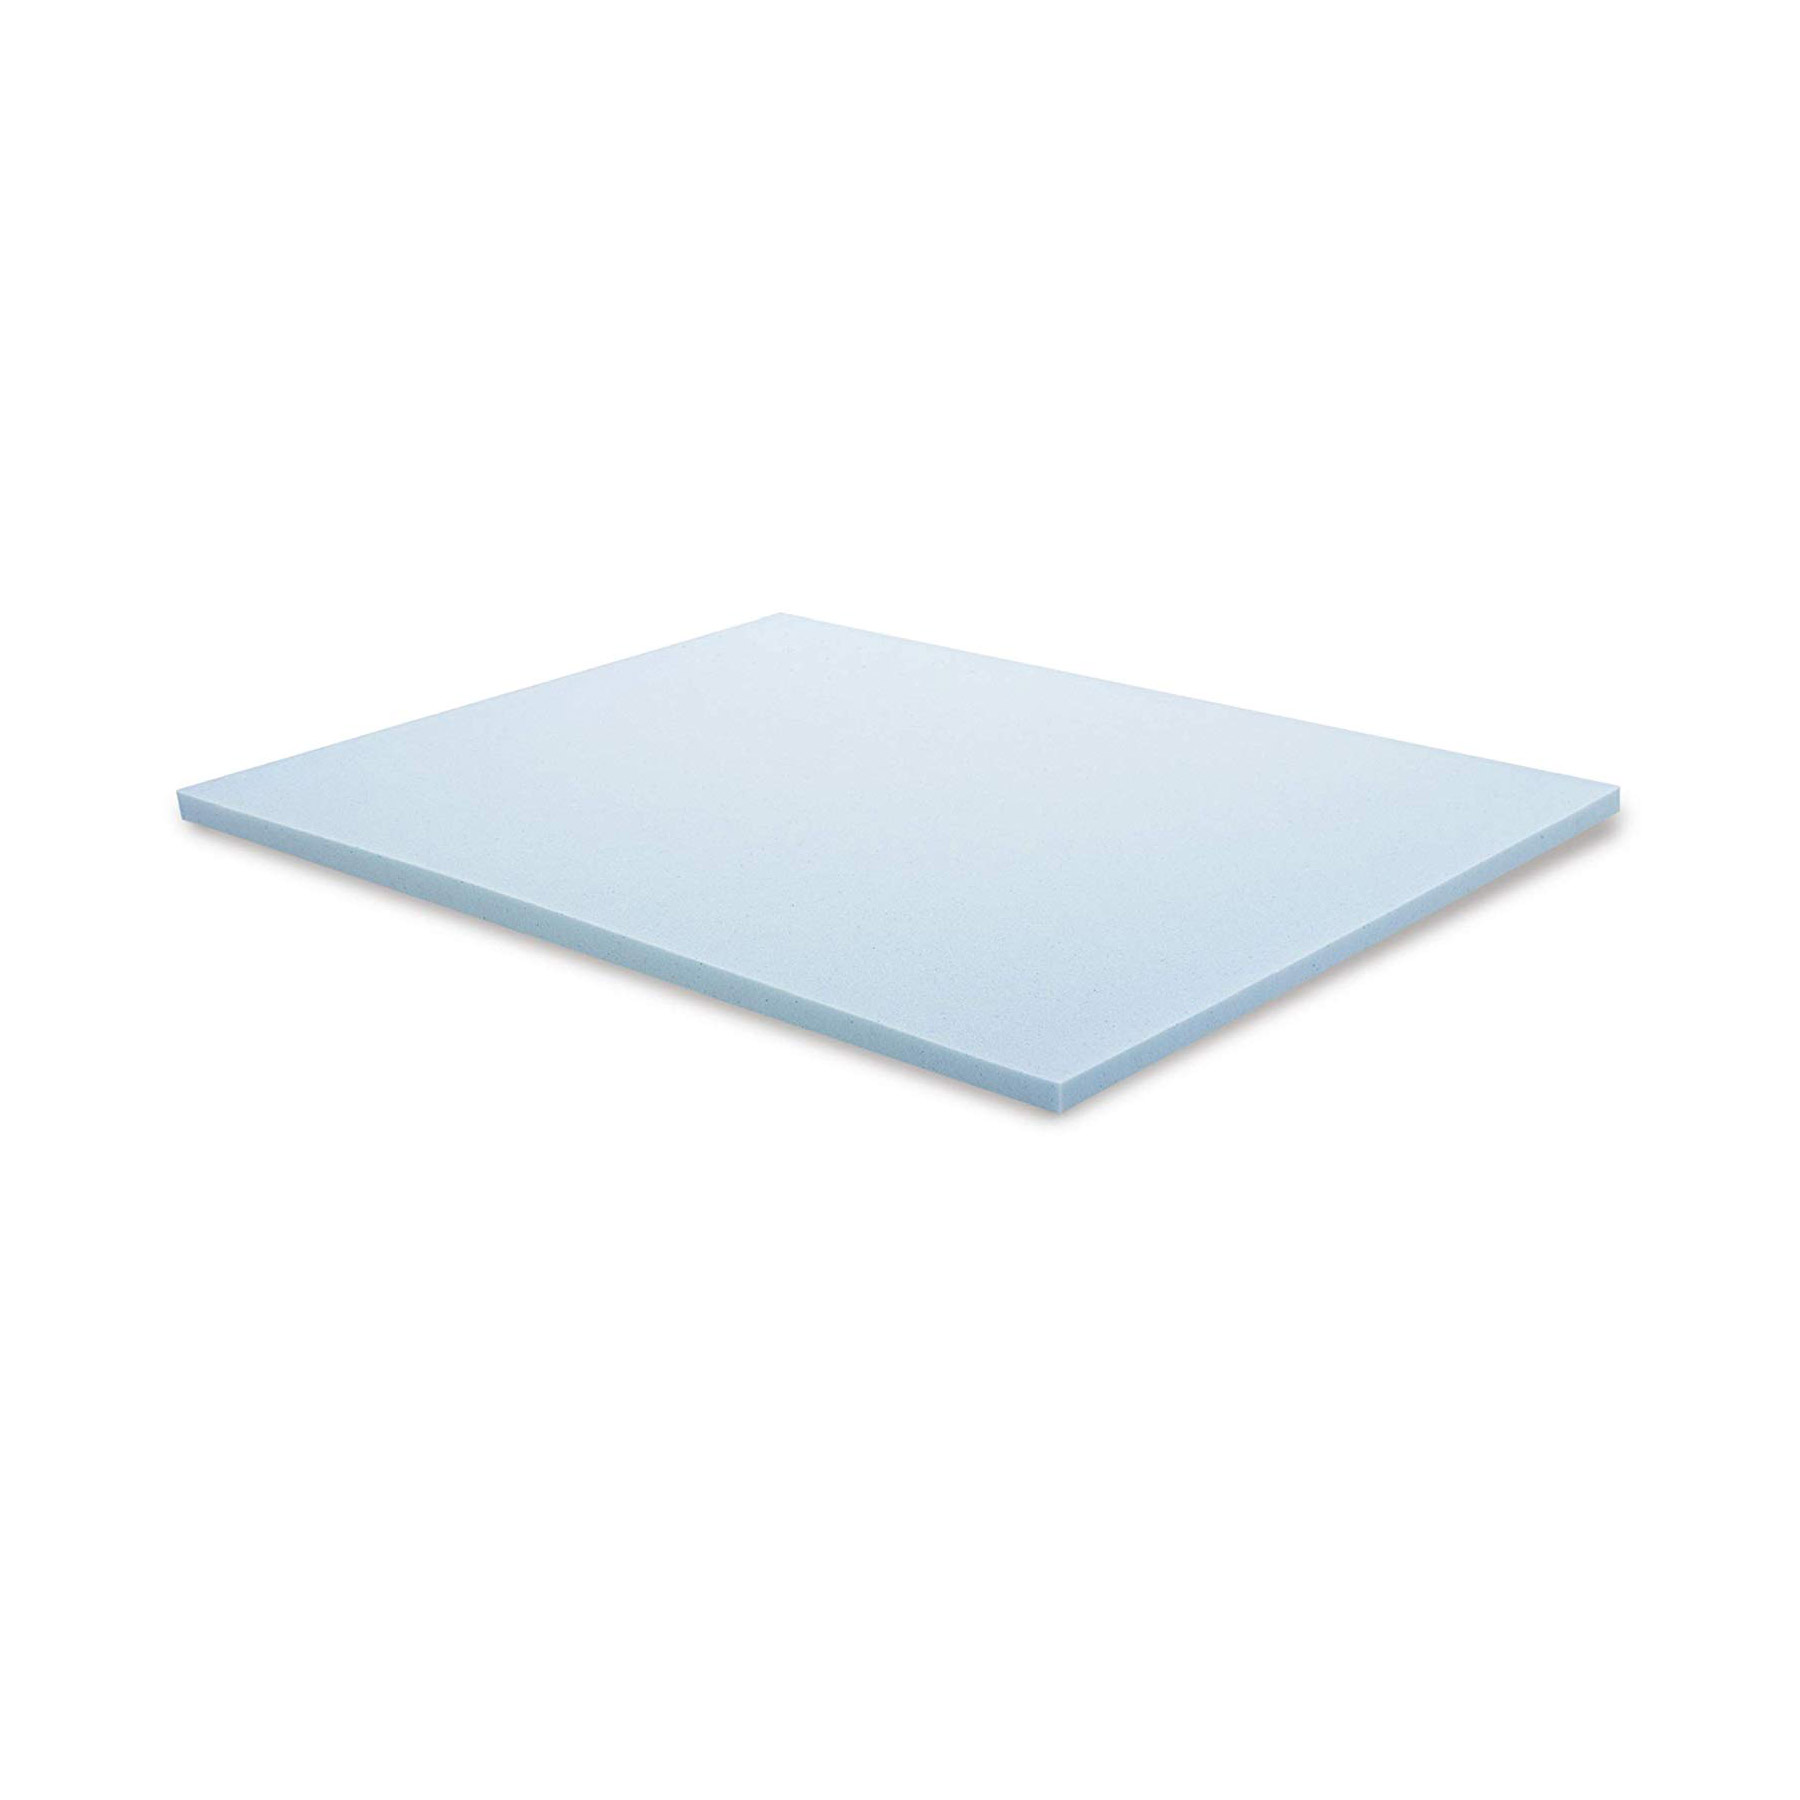 Linenspa Two-Inch Memory Foam Mattress Topper